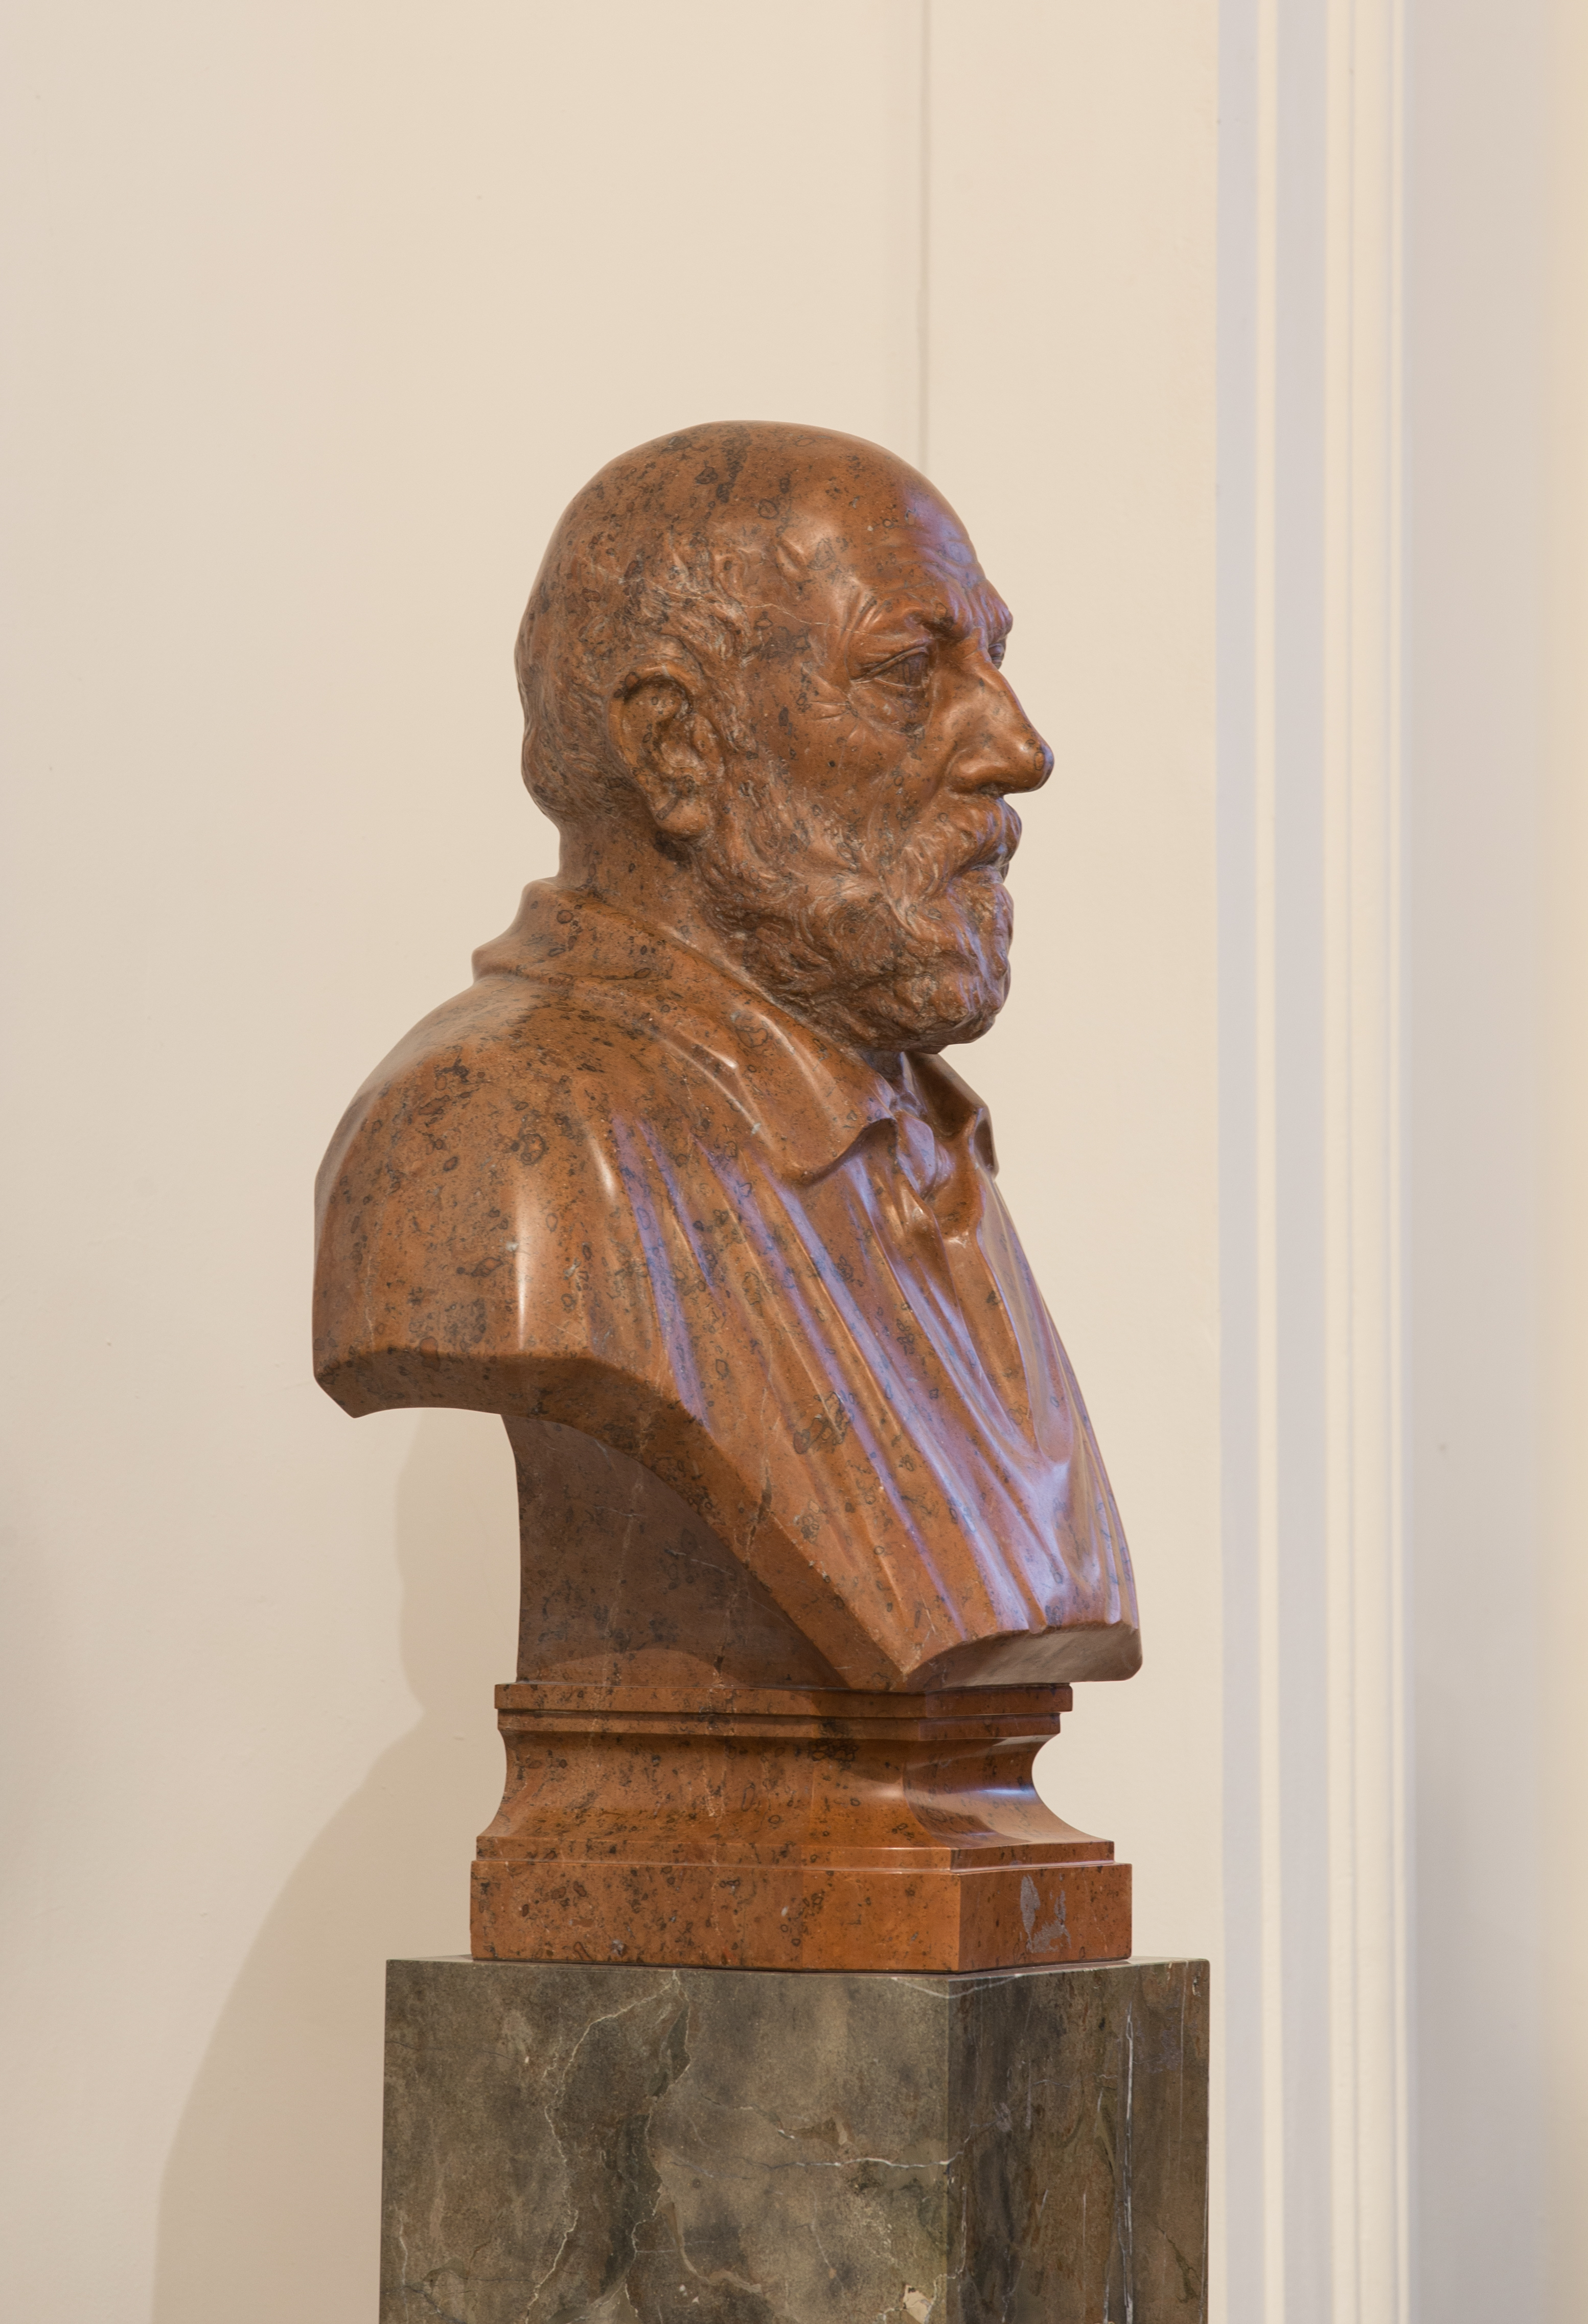 Eduard Suess - Bust in the Aula of the Academy of Sciences, Vienna - hu -8512